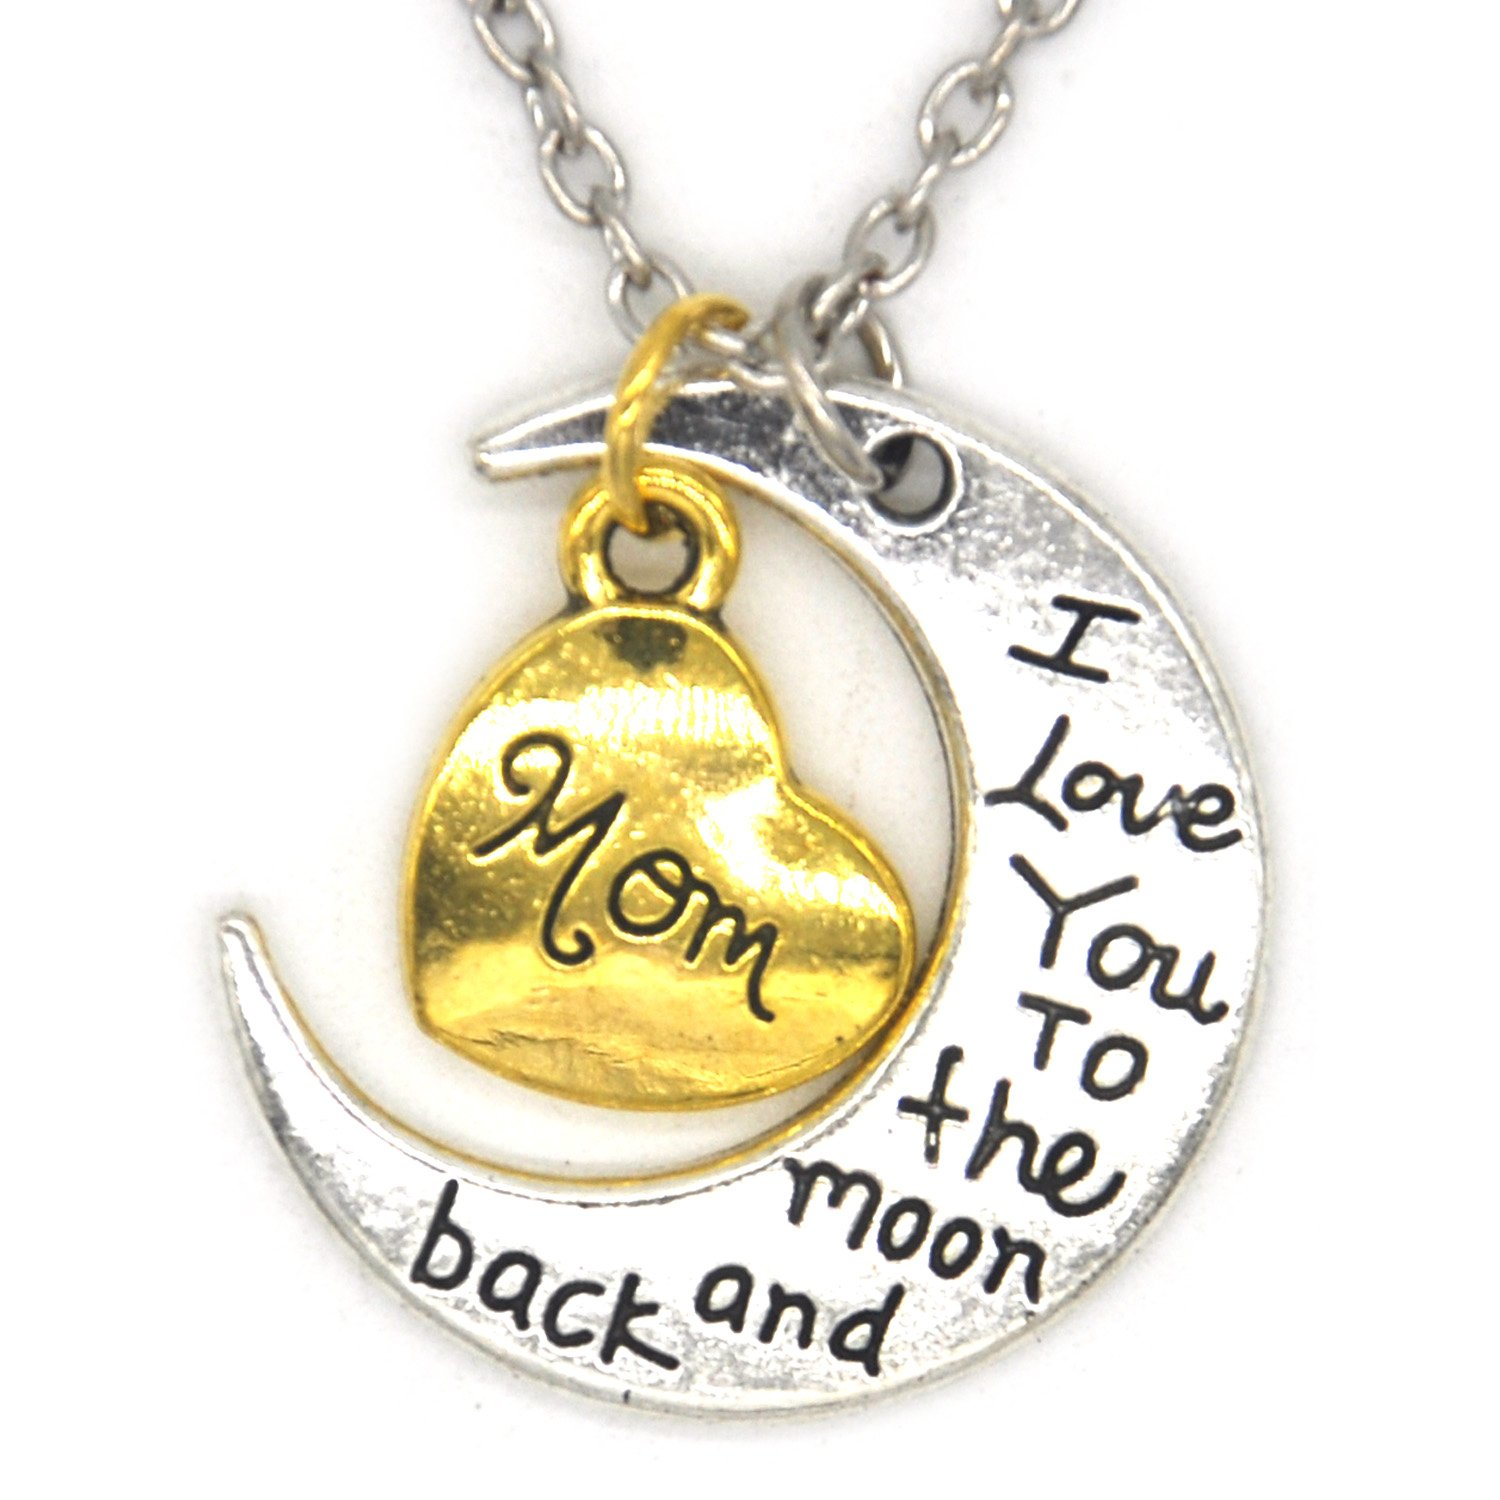 Mom I Love You To The Moon And Back Family Member Engraved Letter Necklace Bracelet